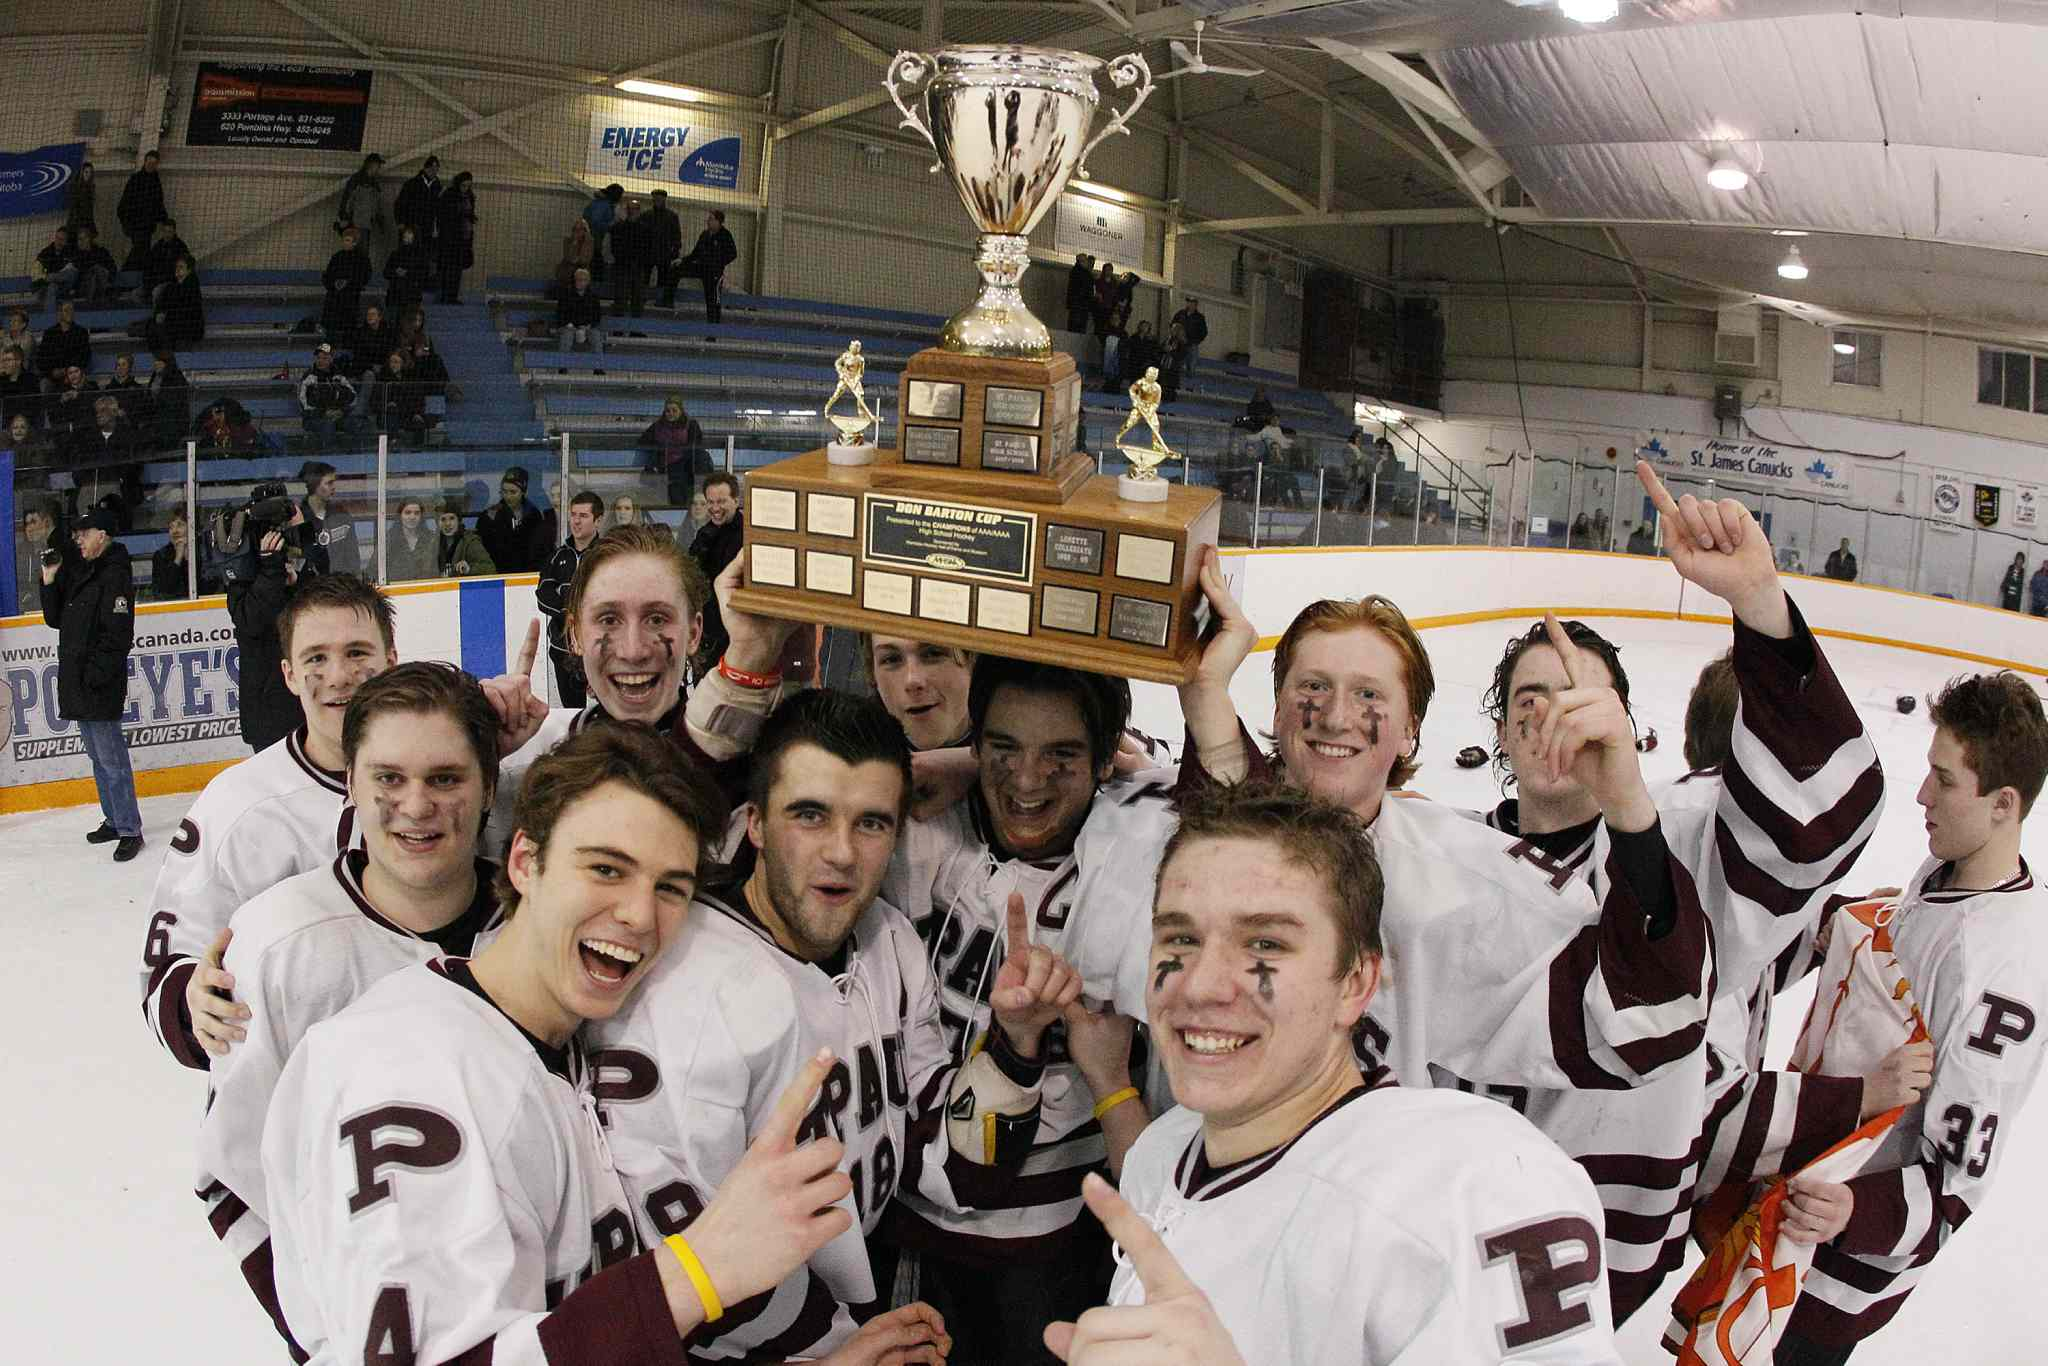 Members of the St. Paul's Crusaders celebrate a 4-1 win over the River East Kodiaks in the AAAA Provincial High School Hockey Championship at St. James Civic Centre Monday night.